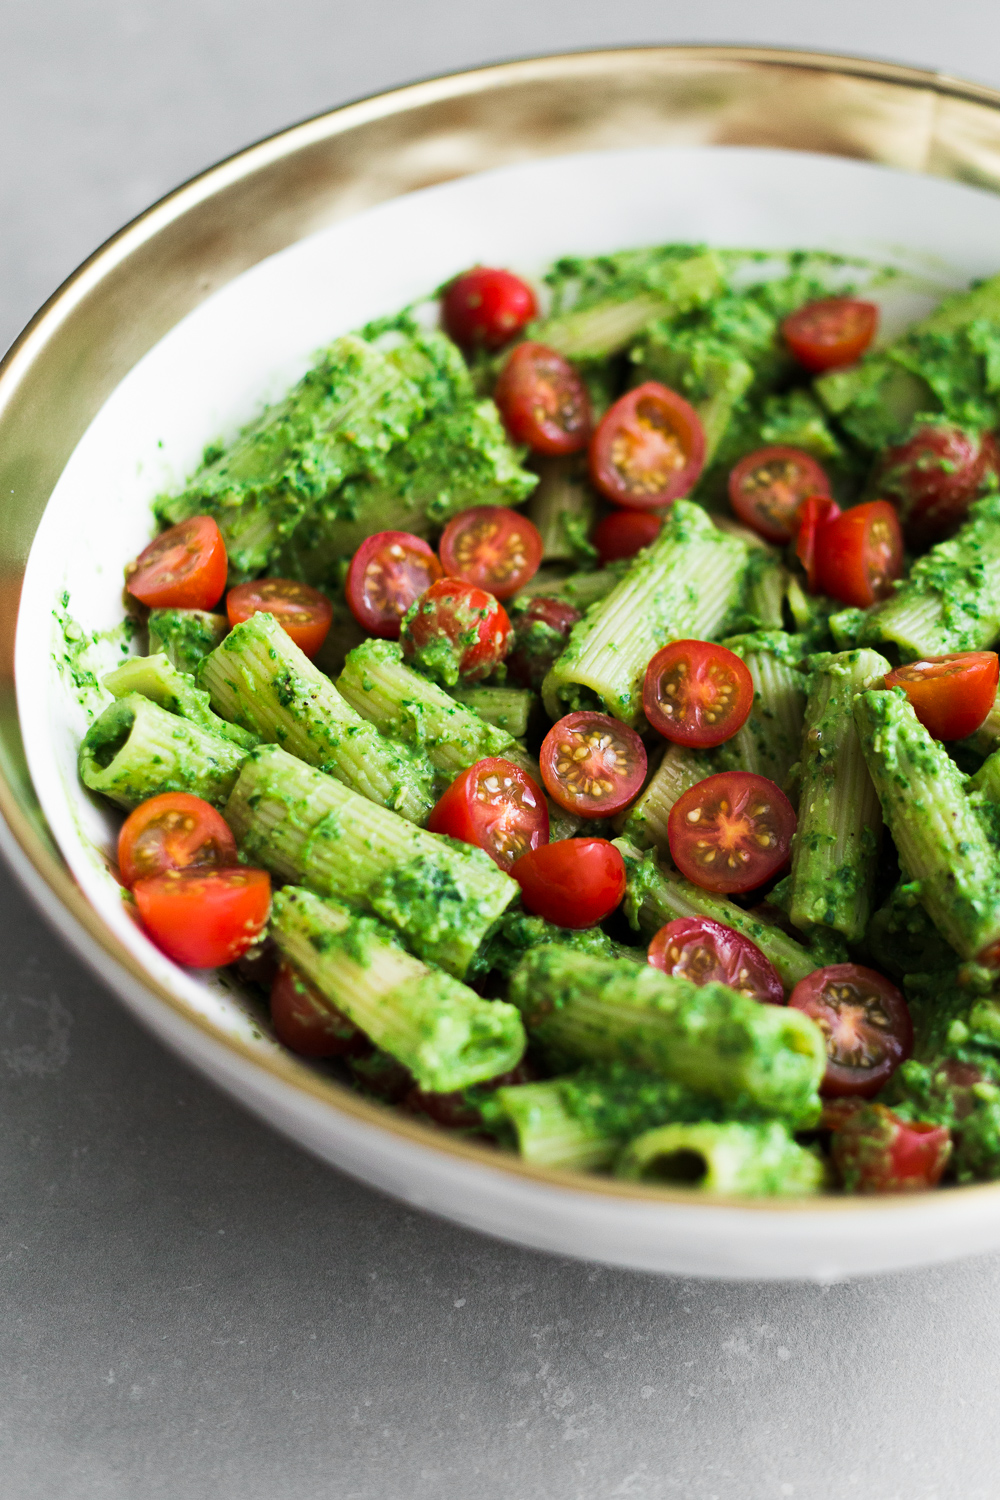 Looking for a quick and simple dinner? Try our this dairy free Avocado Pesto Pasta - ready in under 15 minutes and loaded with bucket fulls of flavor! #vegan #tomato #healthy #avocado #pesto #pasta #simple #quick #pestopasta #dairyfree